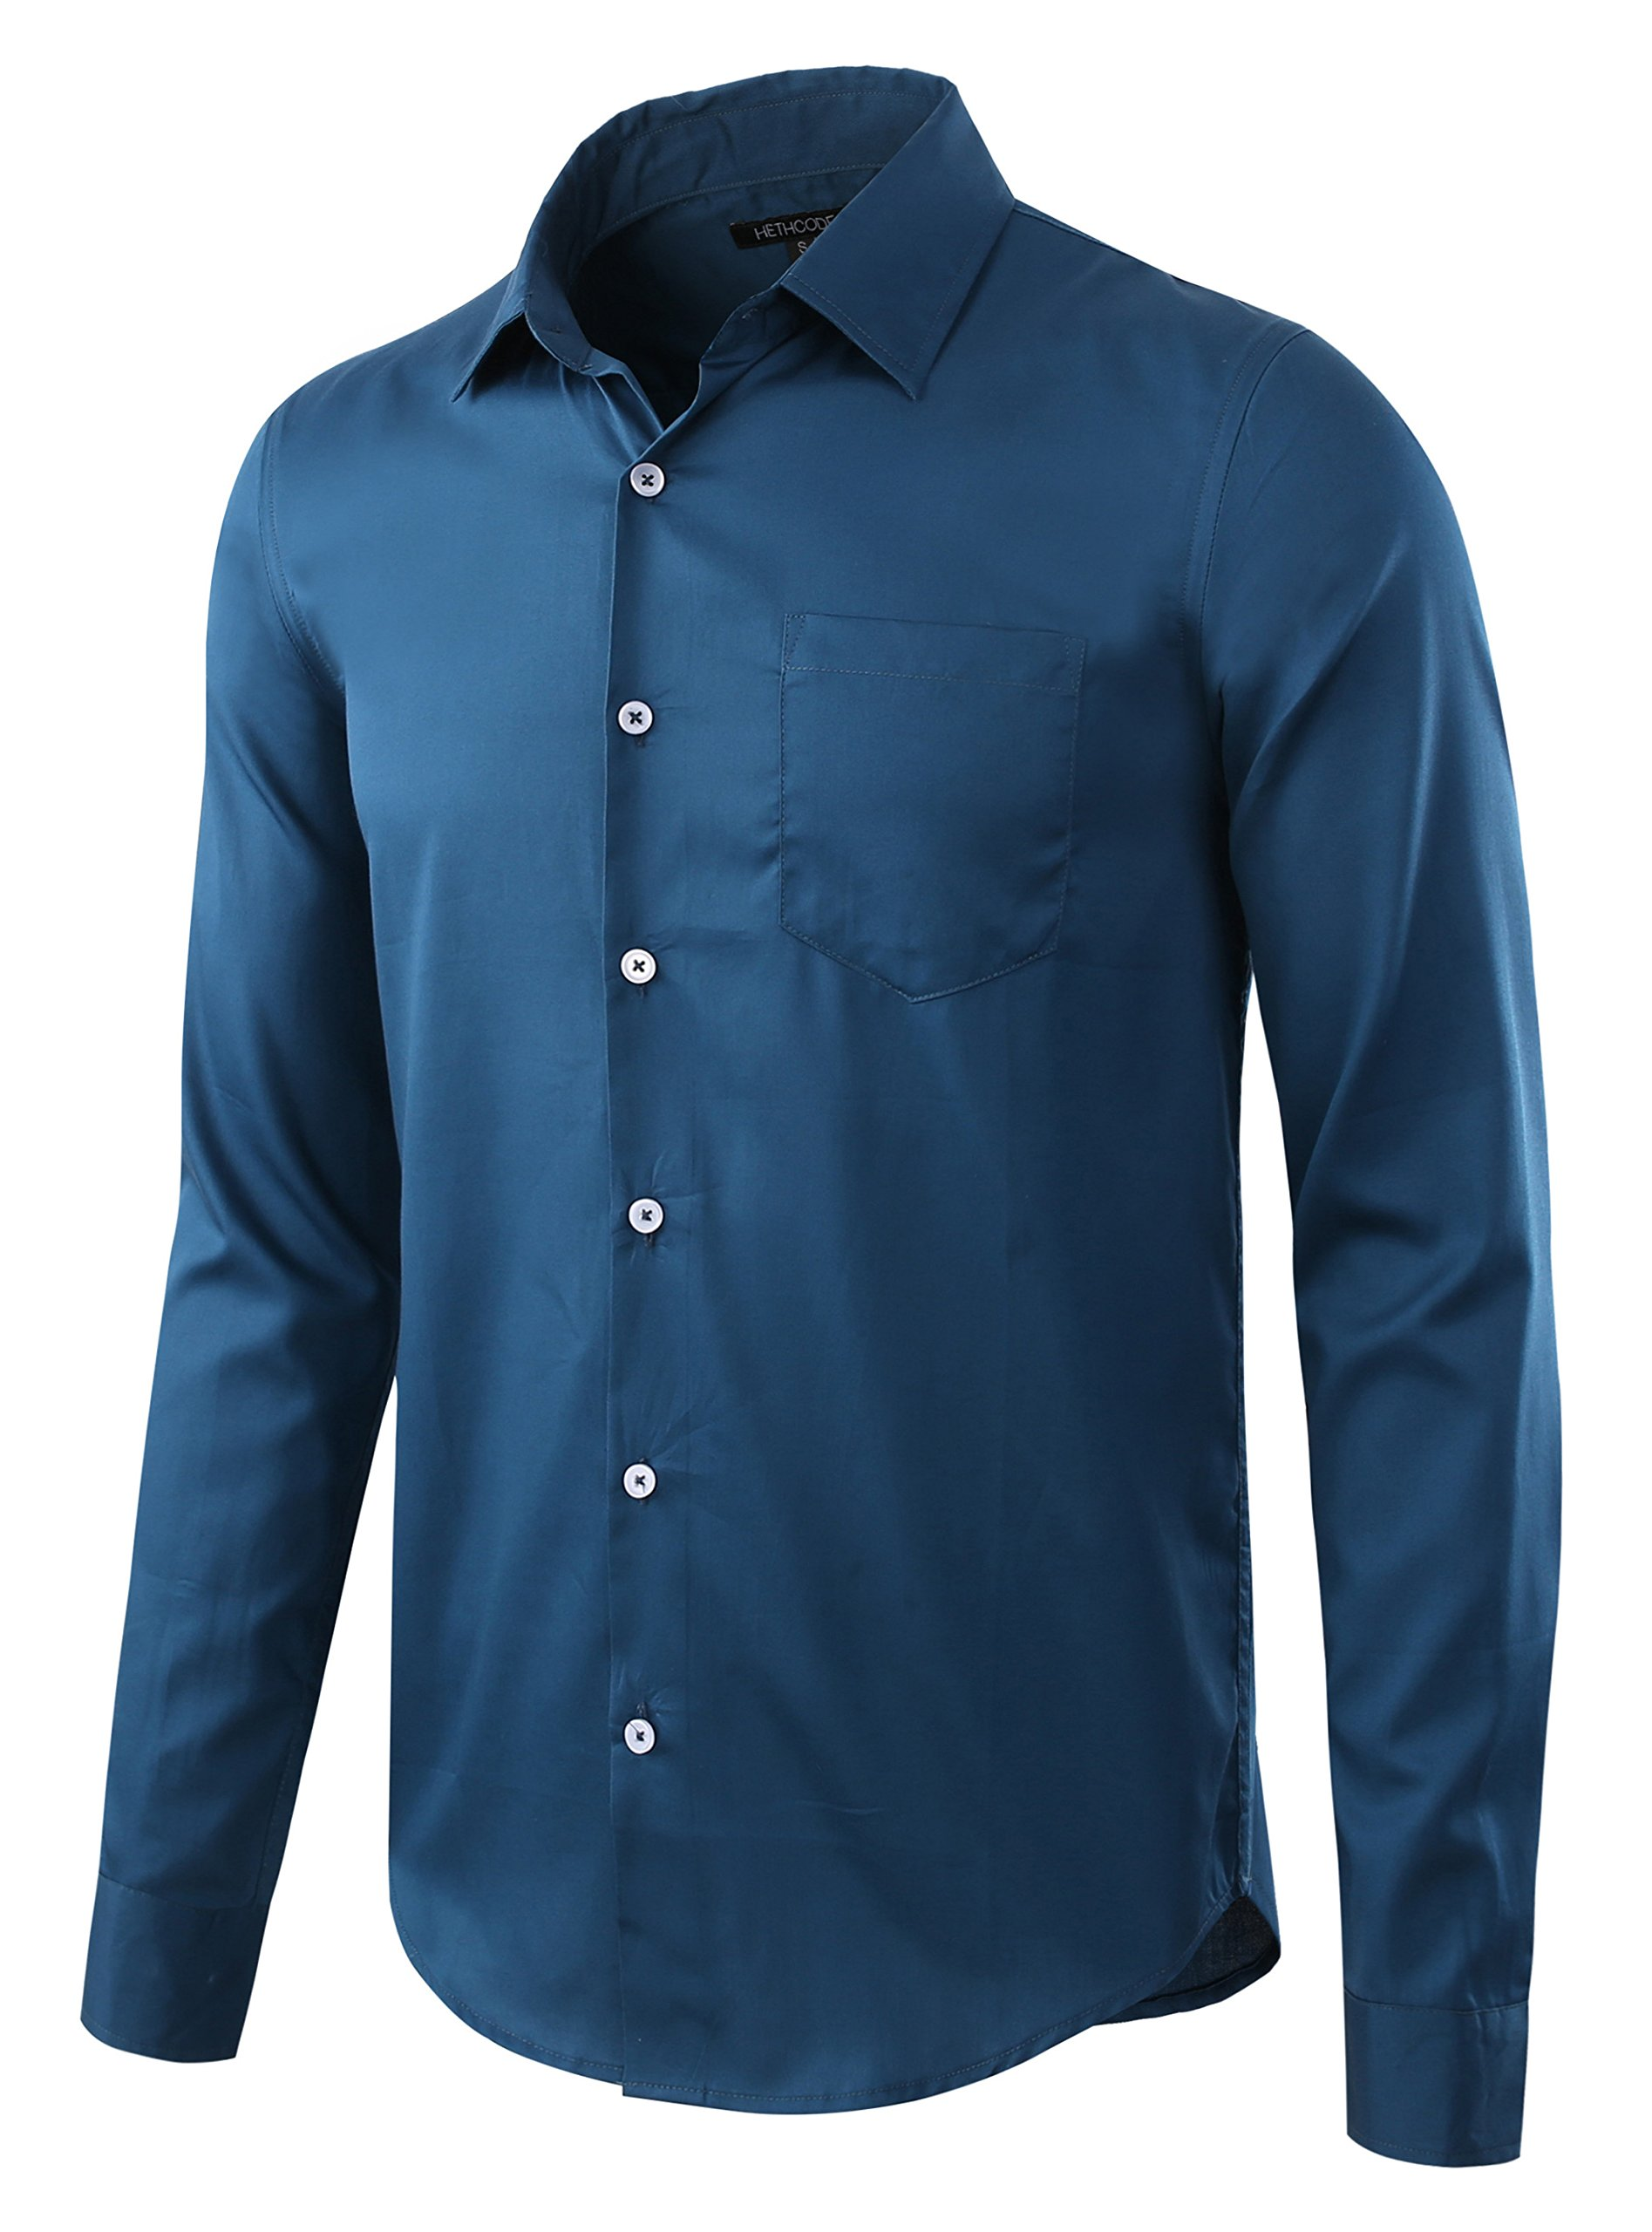 HETHCODE Men's Business Casual Slim-Fit Long-Sleeve Solid Dress Shirt Pacific Green M